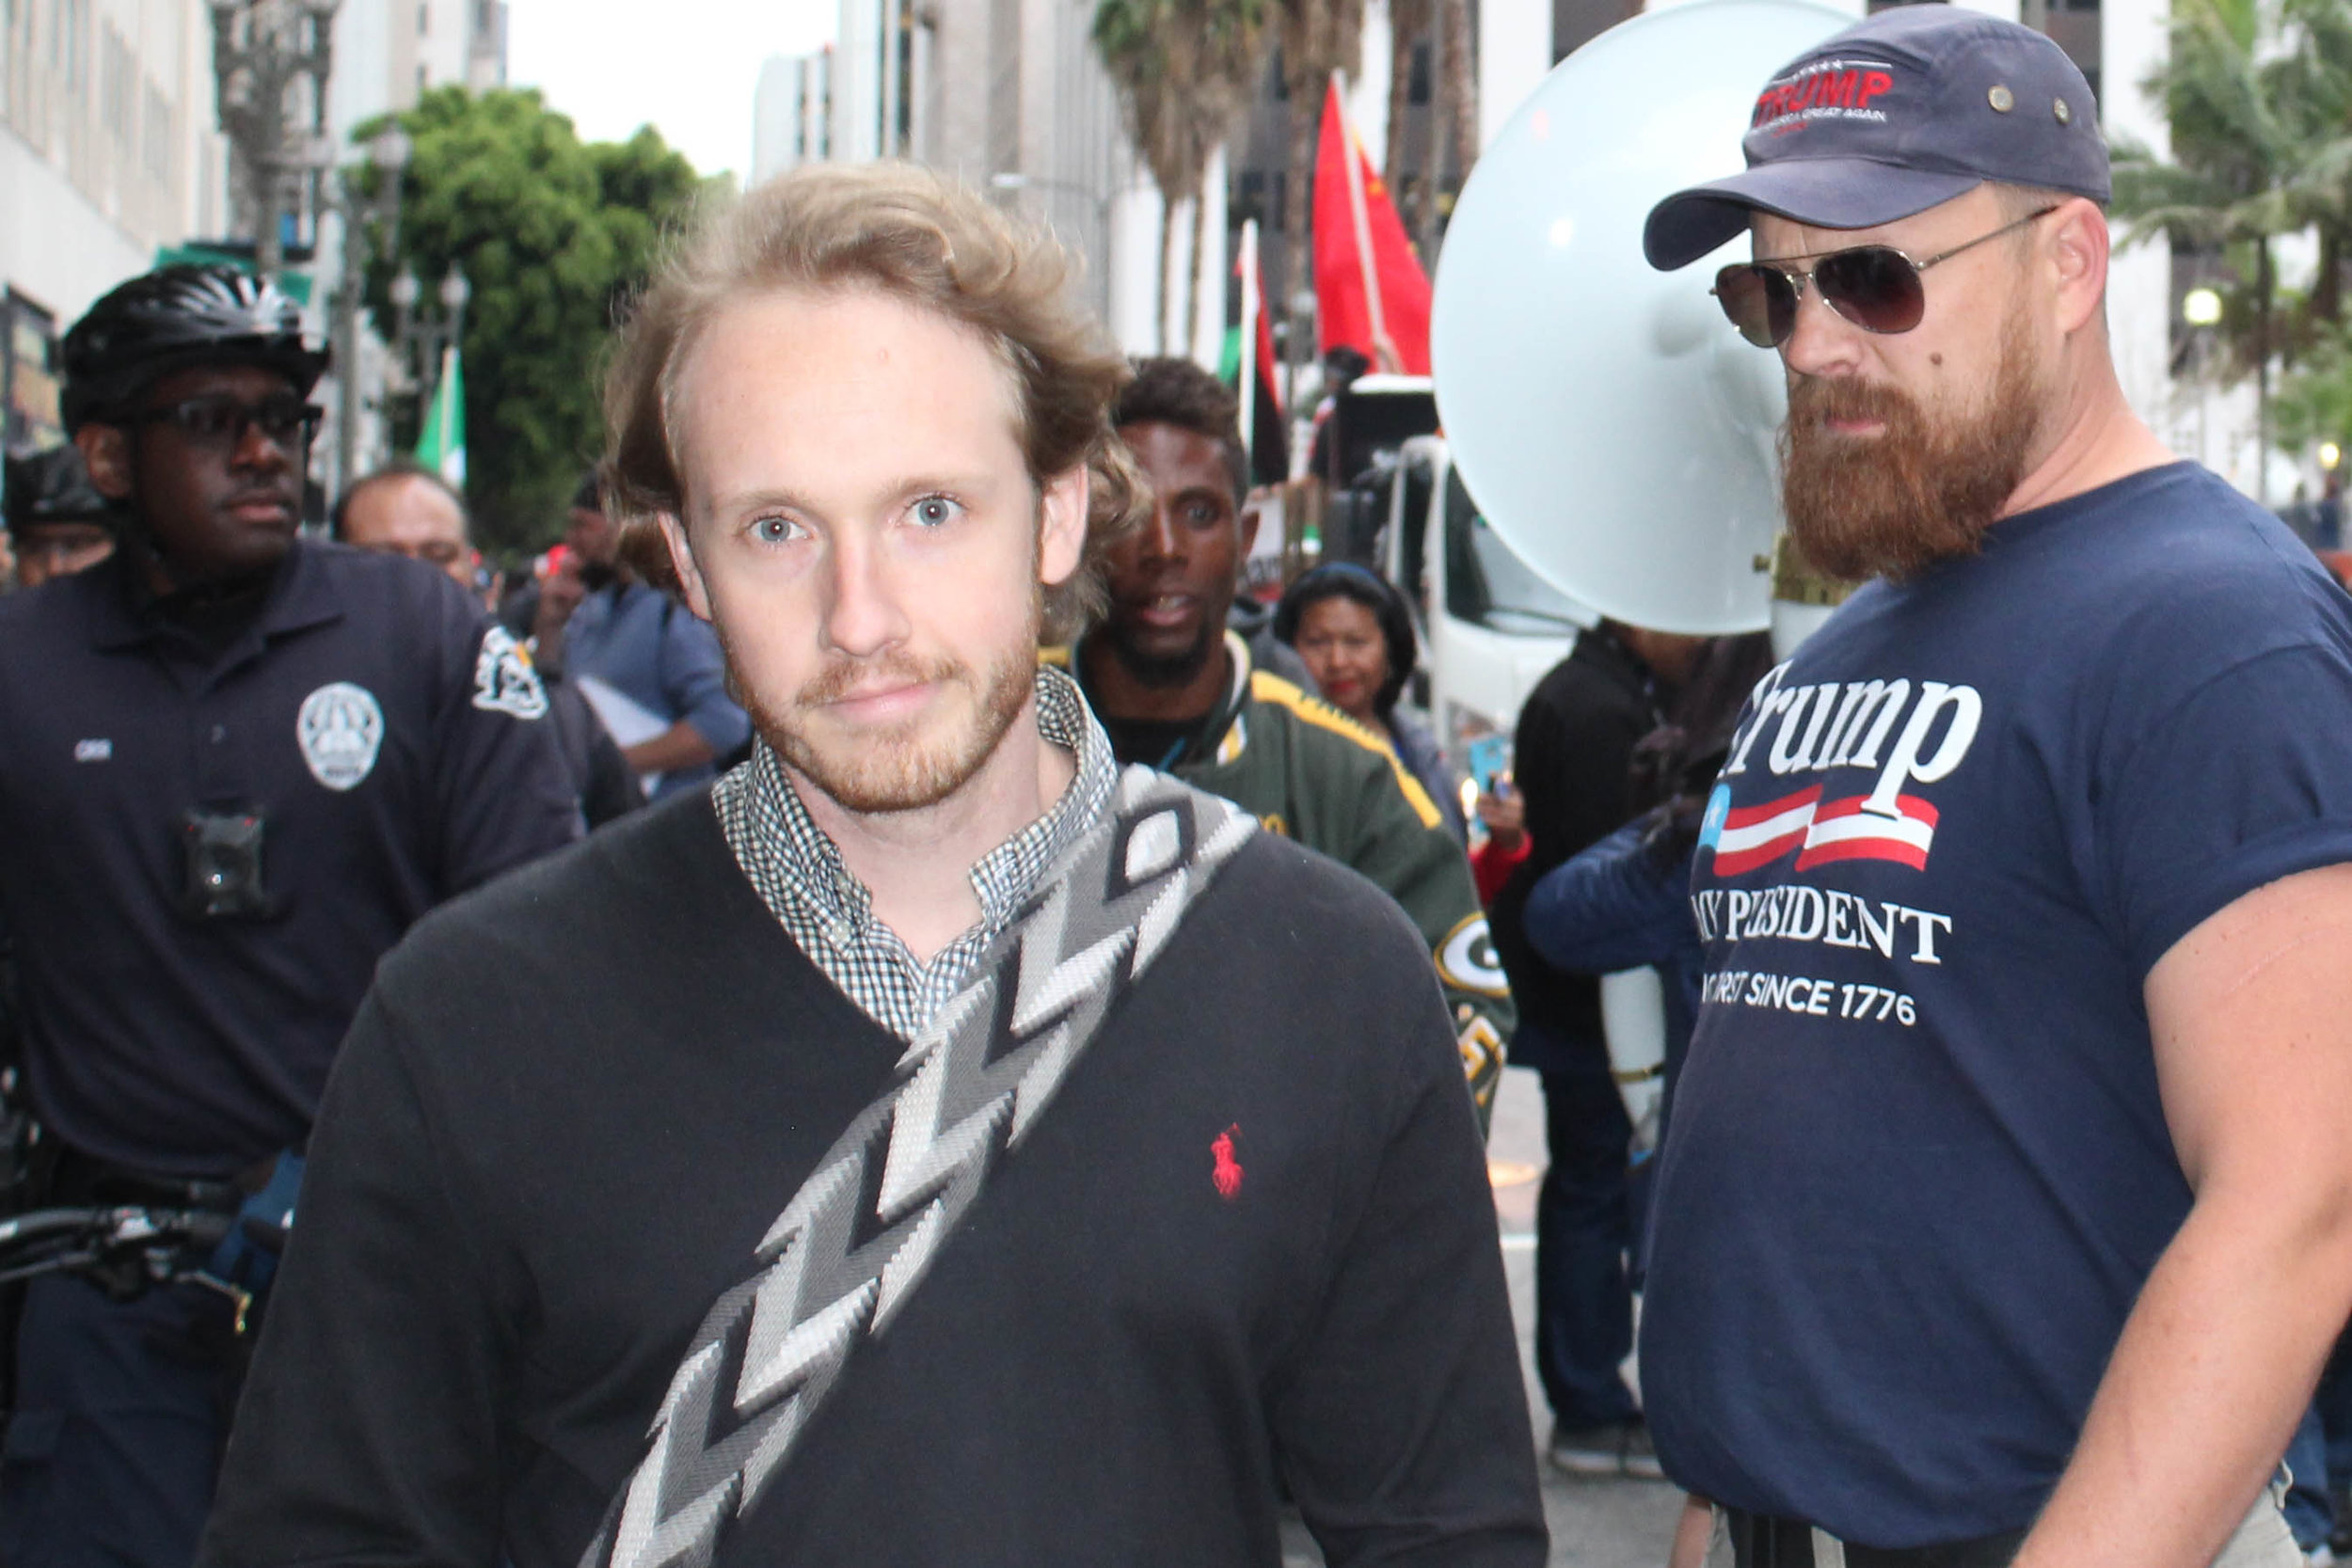 A Donald Trump supporter gets ready to confront an anti-Trump supporter after he spit near his feet at the May Day Protest in downtown Los Angeles on May 1, 2018. (Daniel Farr/ Corsair Photo).